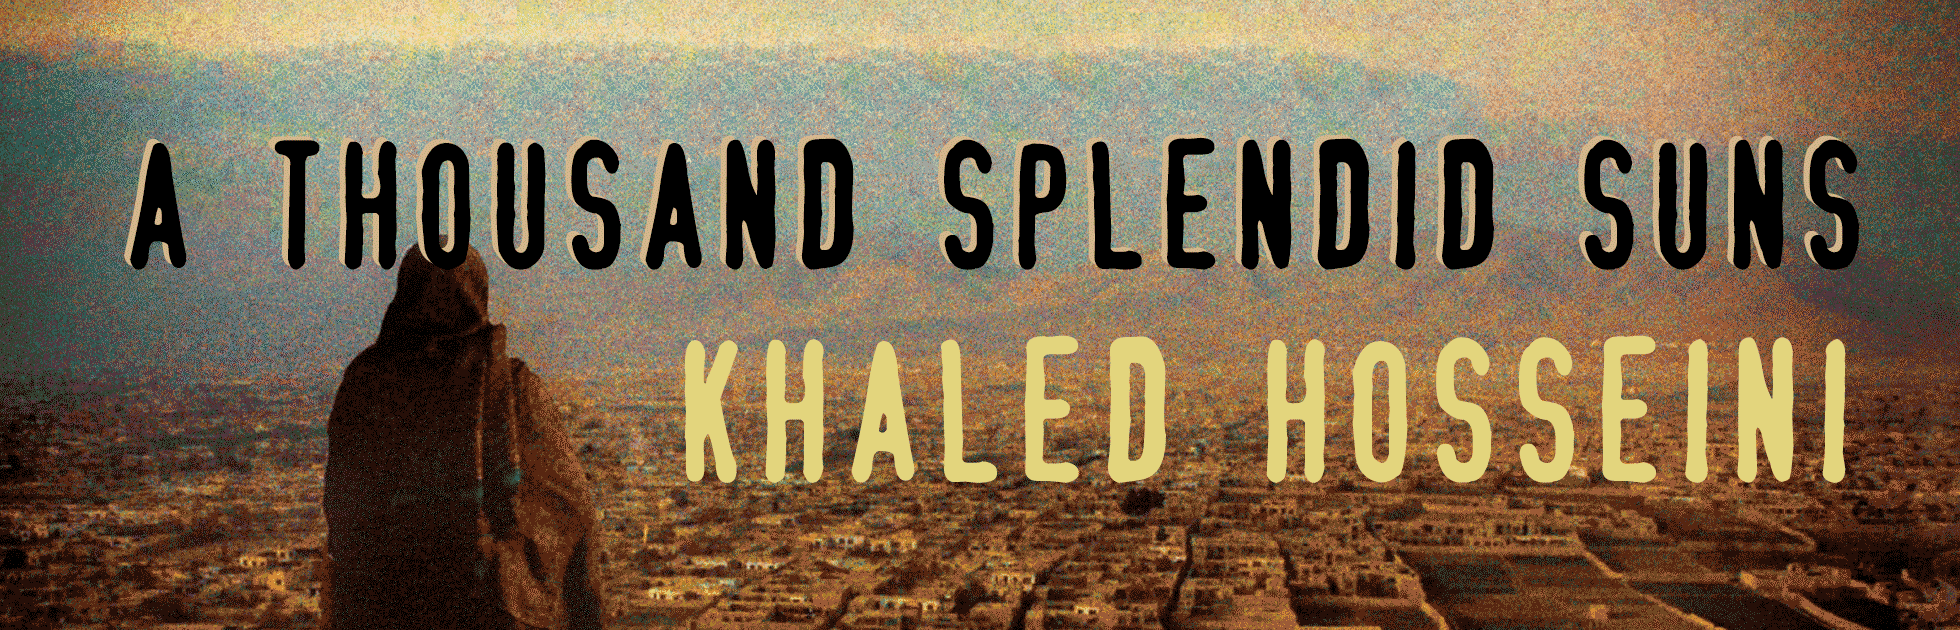 a thousand splendid suns khaled hosseini